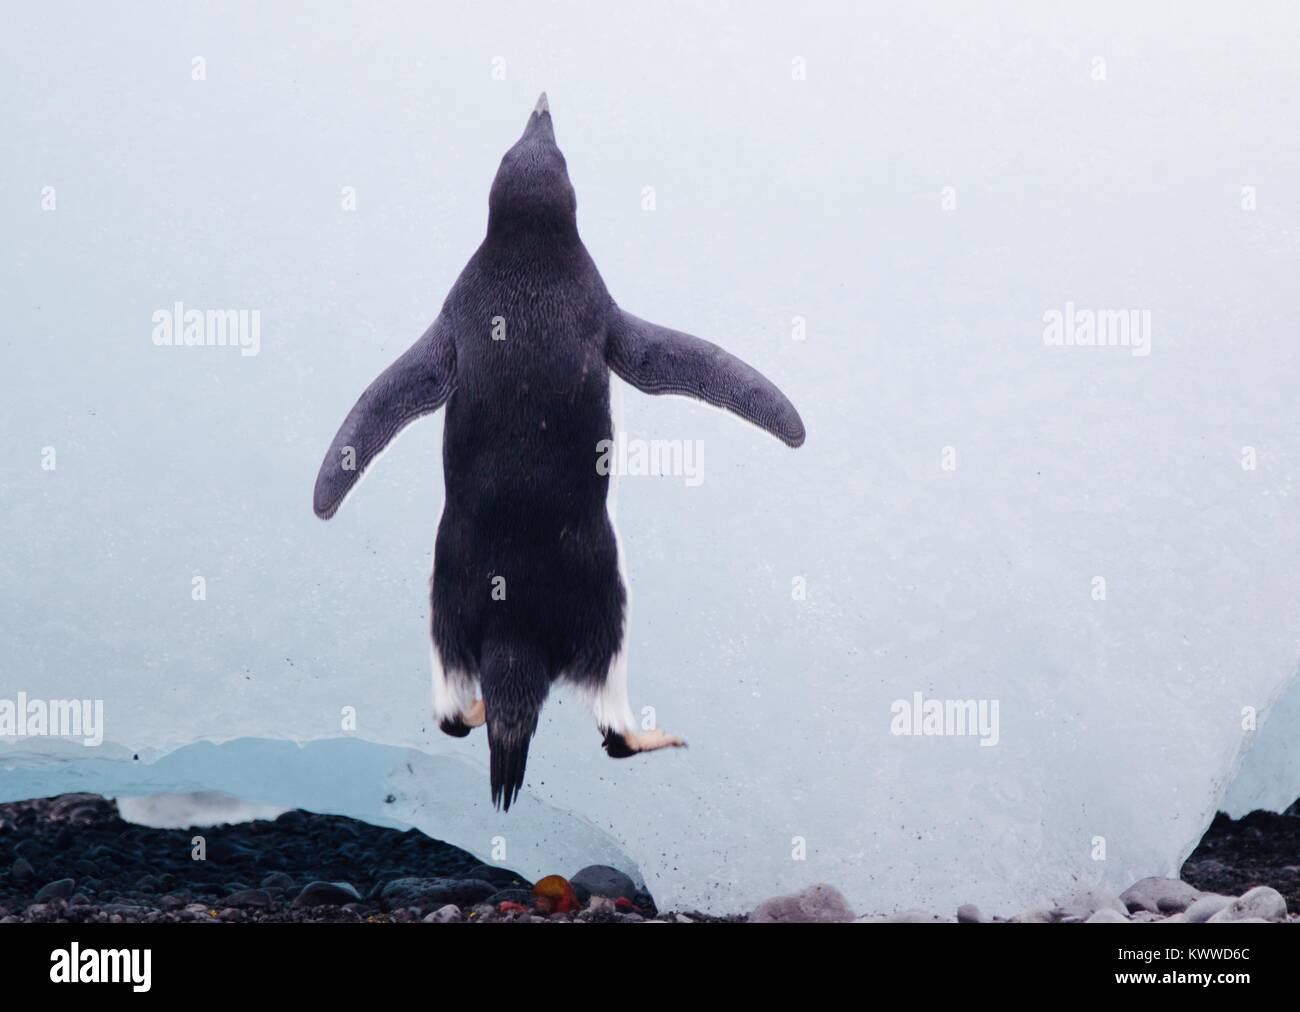 Penguins photographed during a 2 month tour of the various islands of antartica 2017 - Stock Image